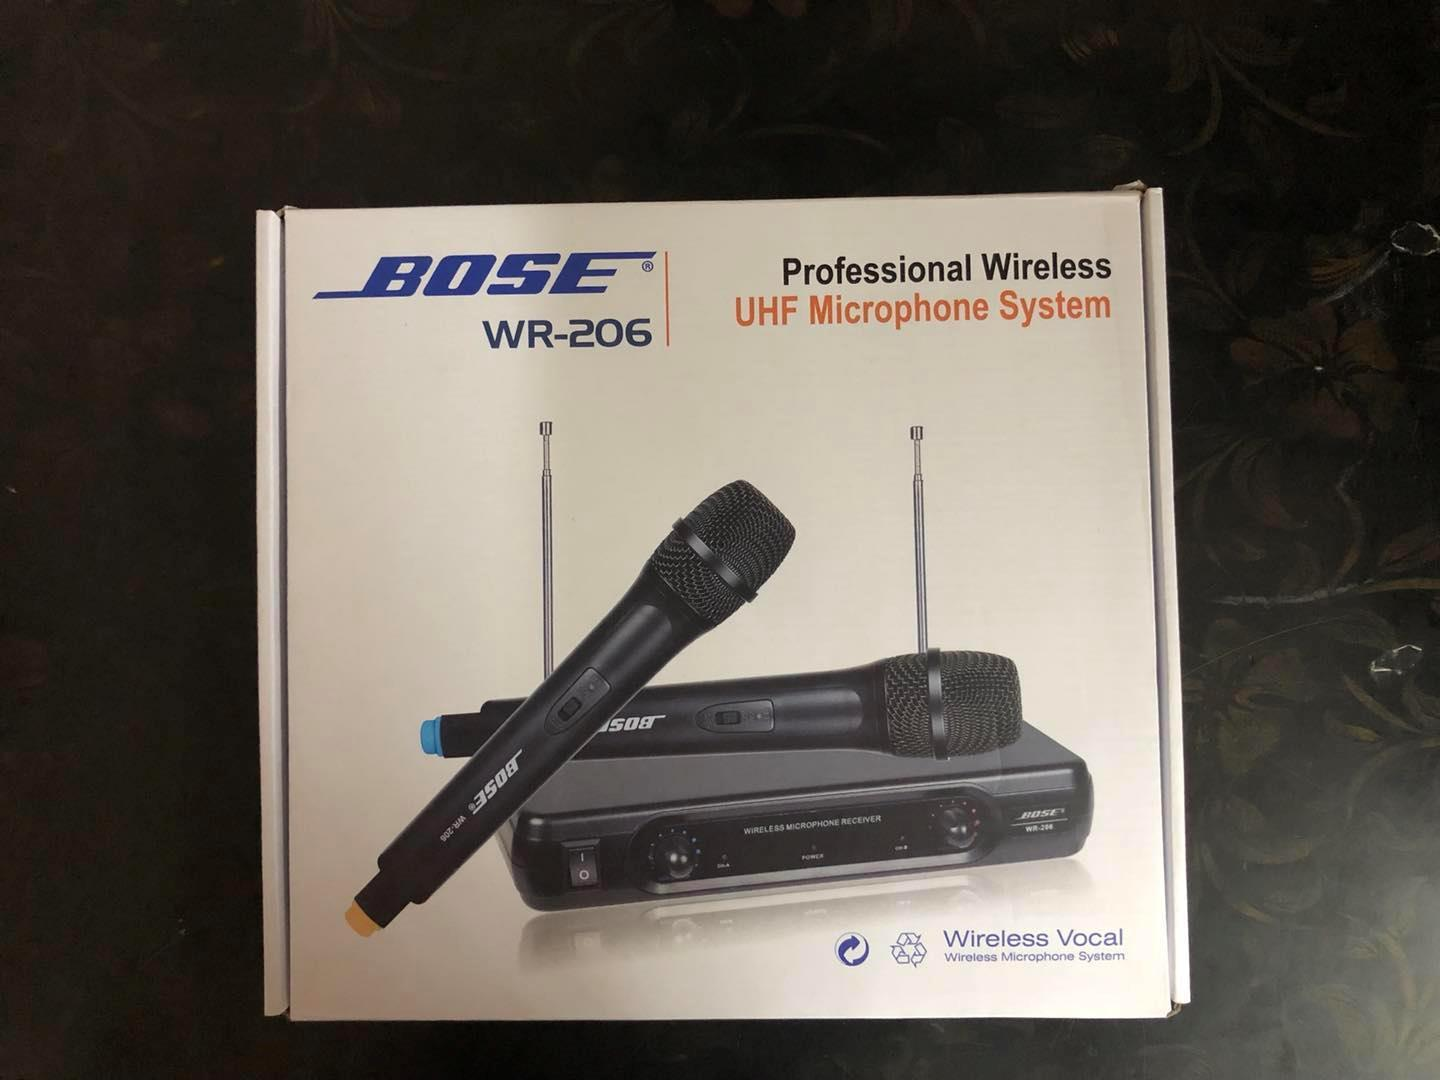 Wireless Mic For Sale Microphone Prices Brands Specs Echo Mics Cb Radio Wiring Wr 206